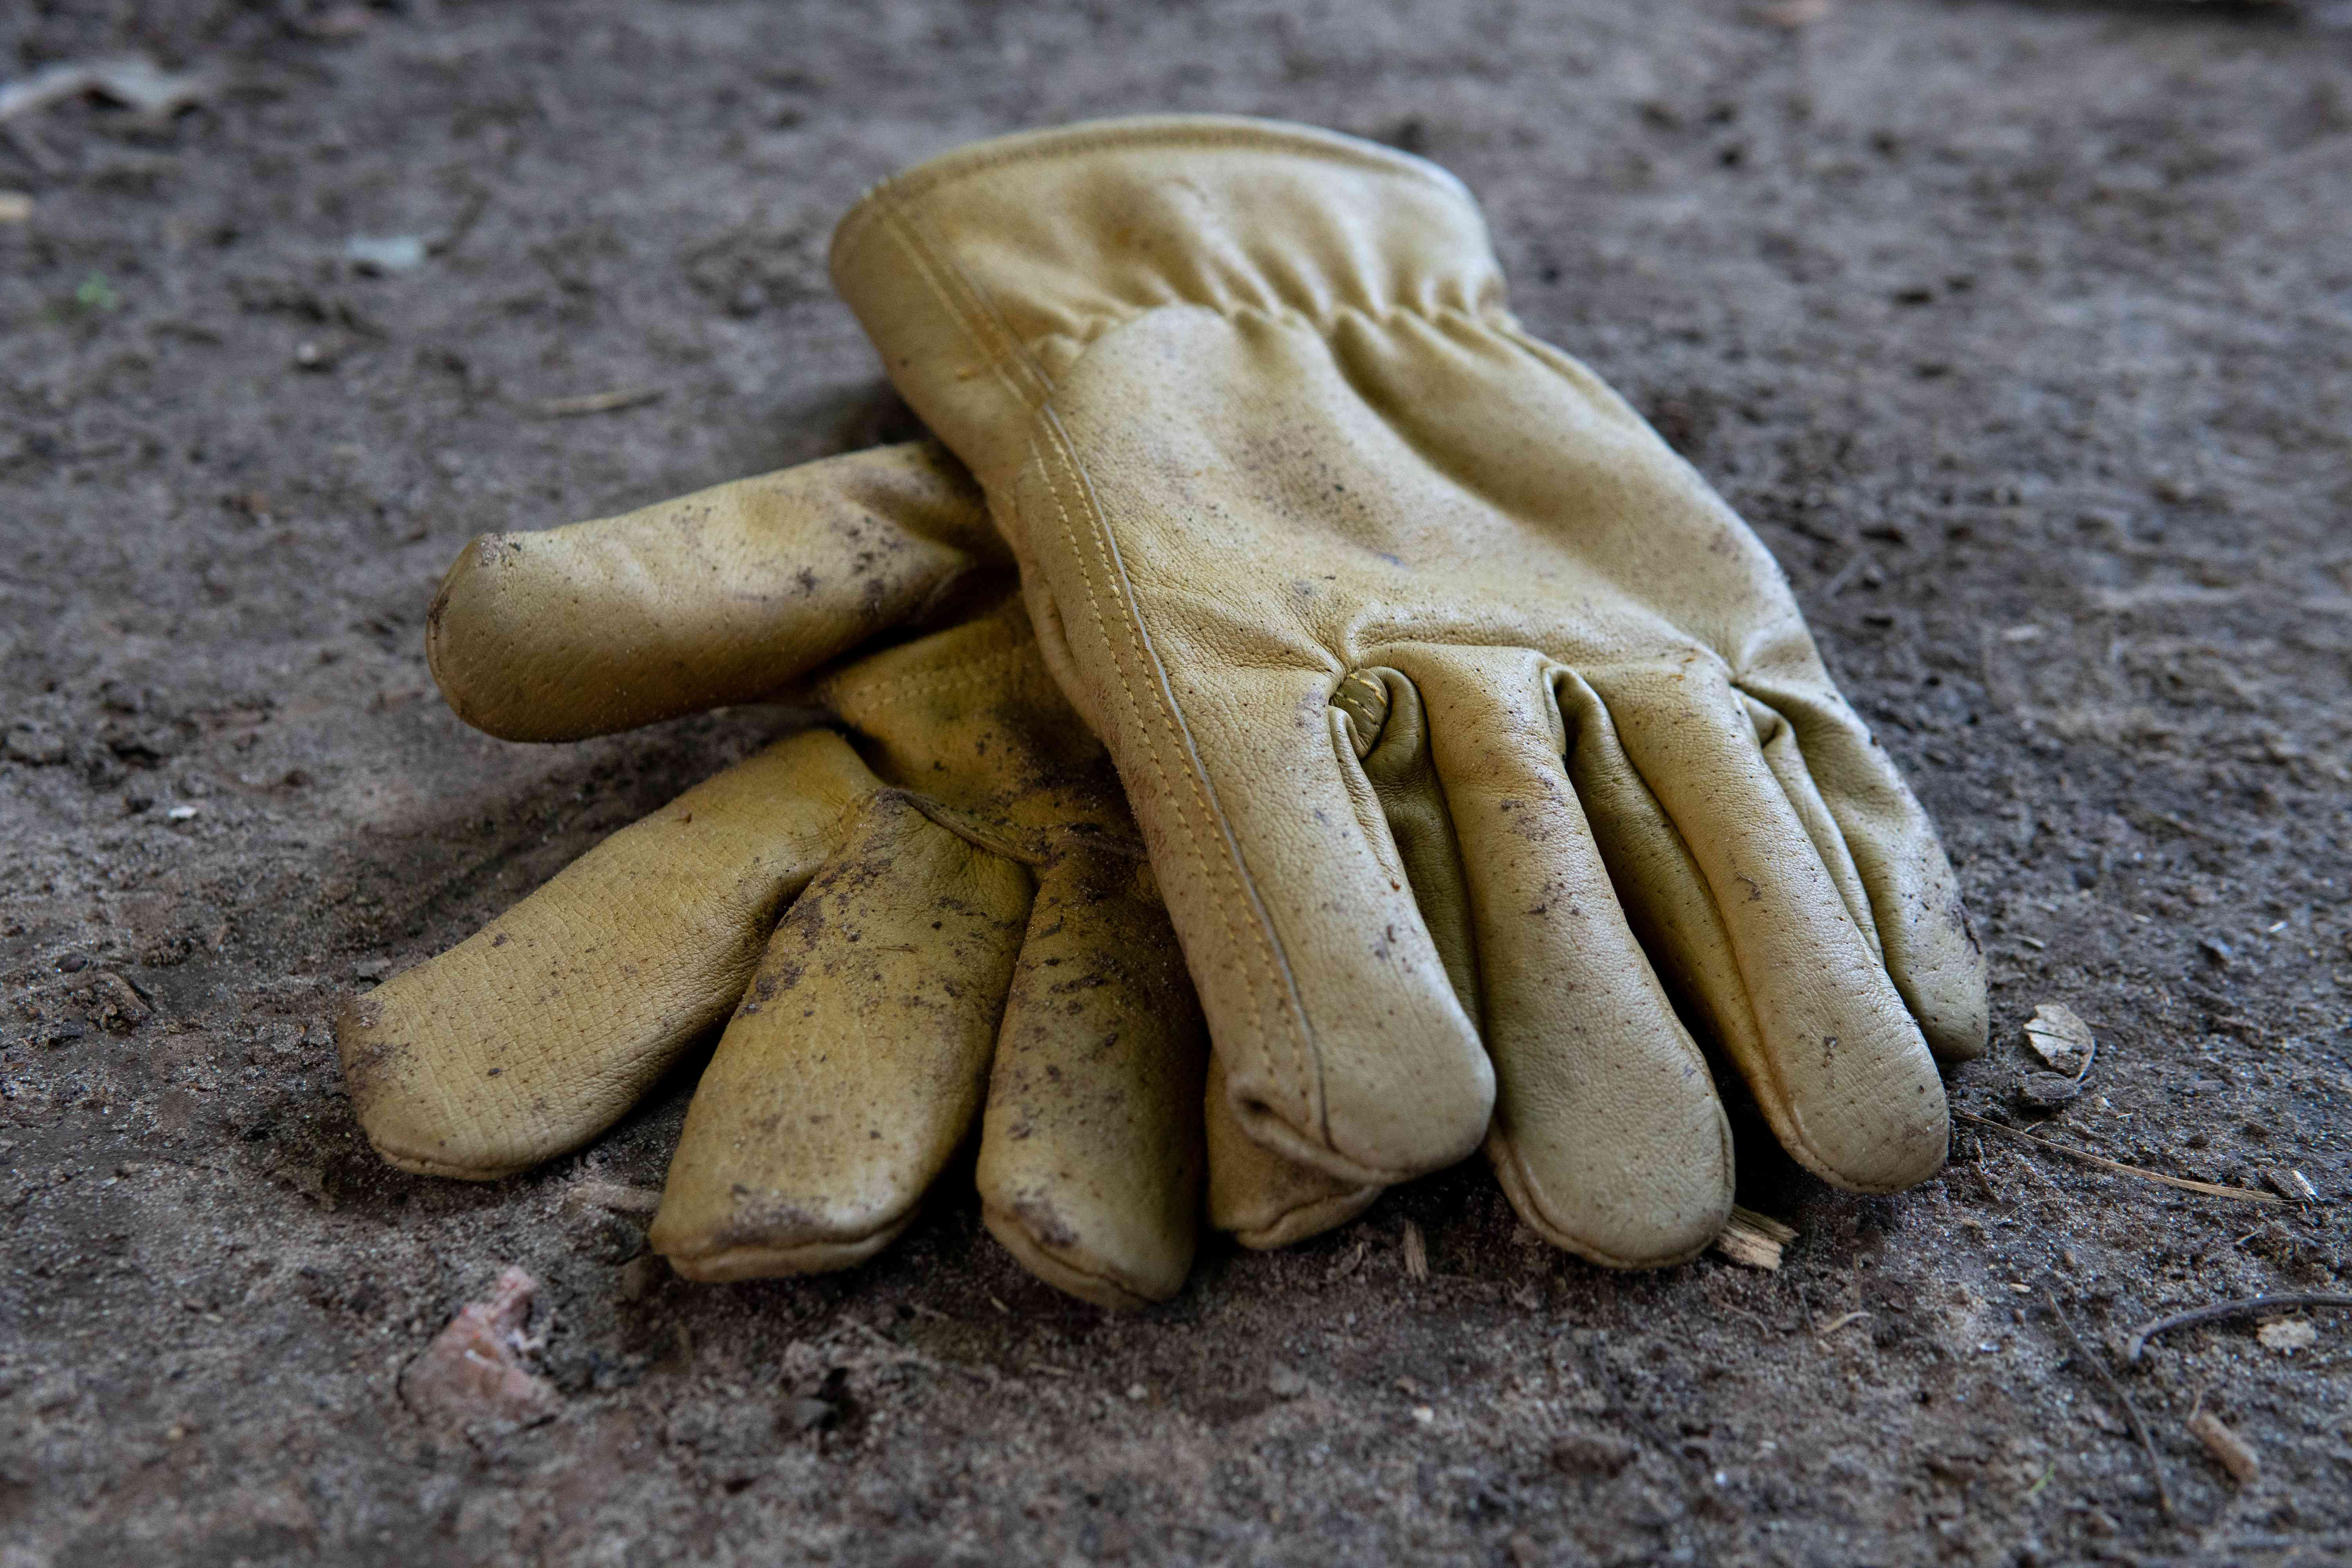 weathered leather gloves on dirt floor